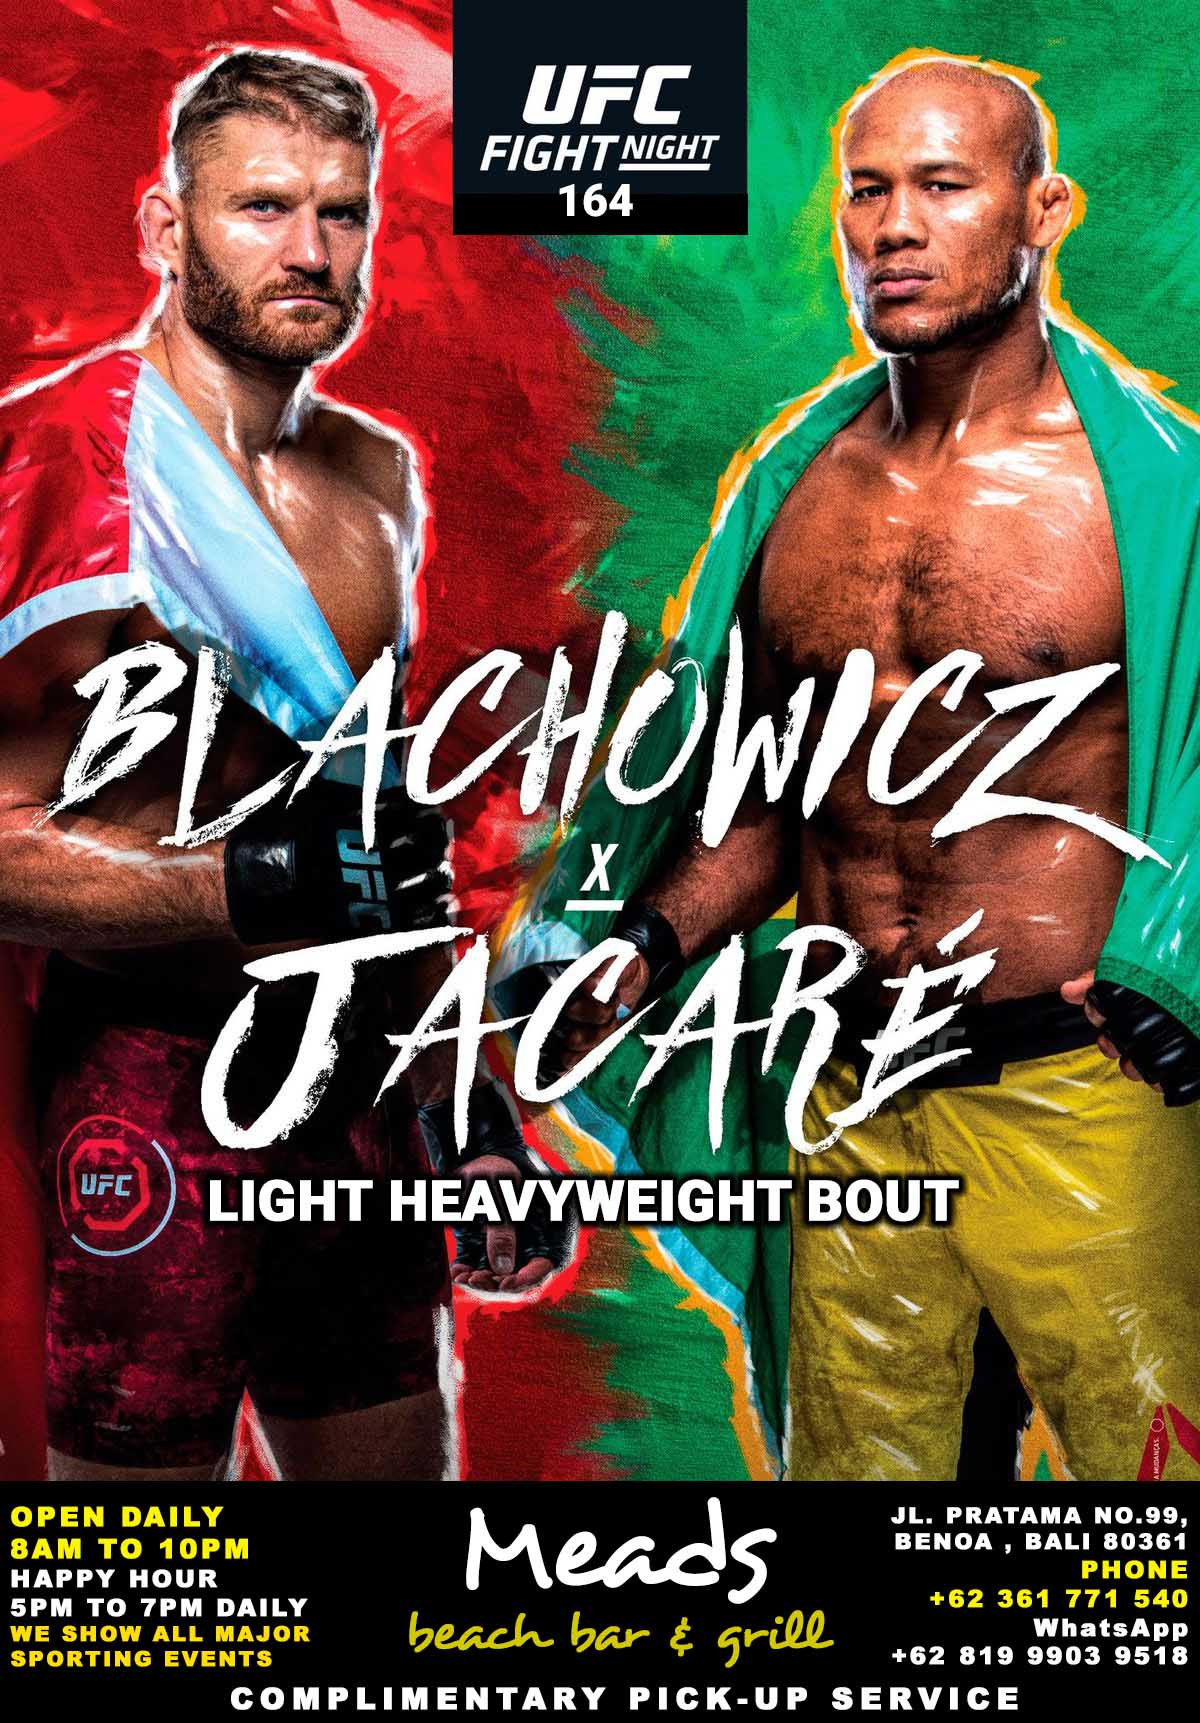 Meads in Bali Presents UFC Fight Night 164 Blachowicz vs Jacare